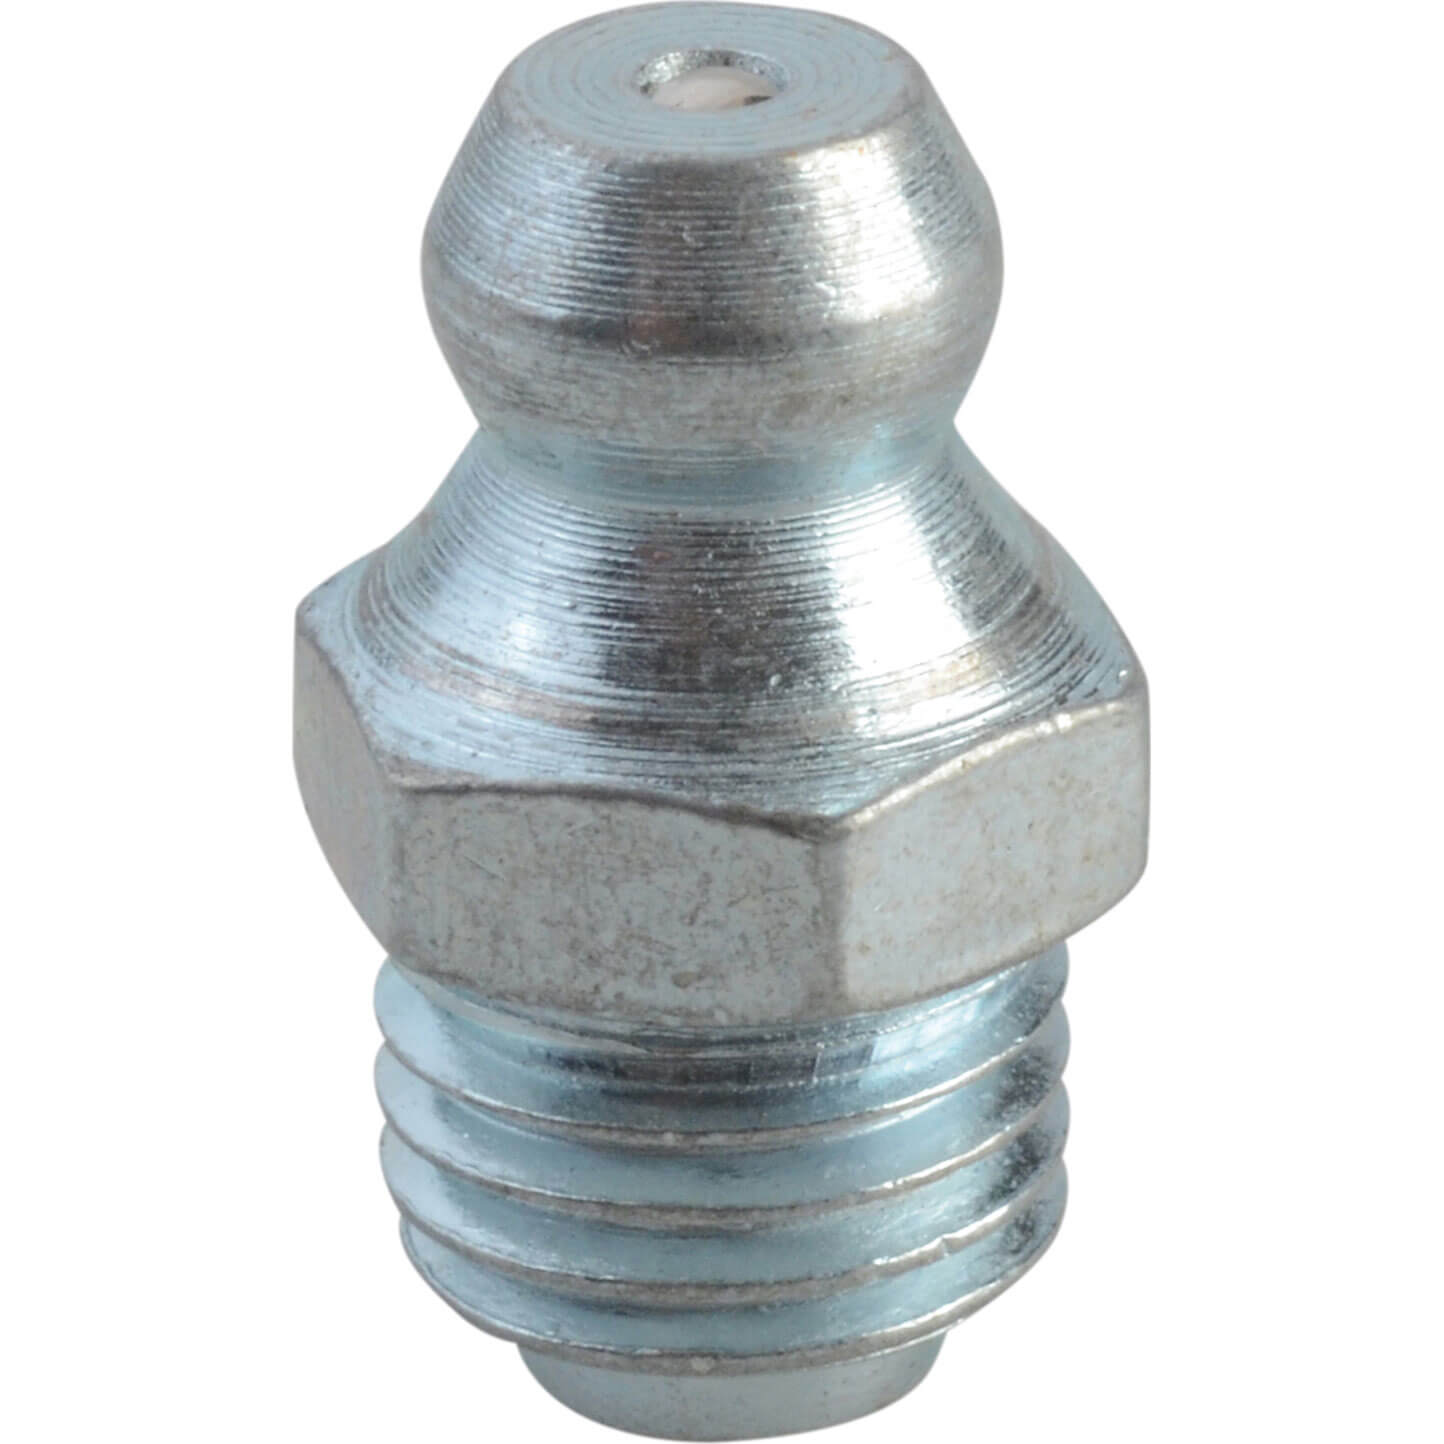 Lumatic Hydraulic Nipple Straight Metric Thread M8